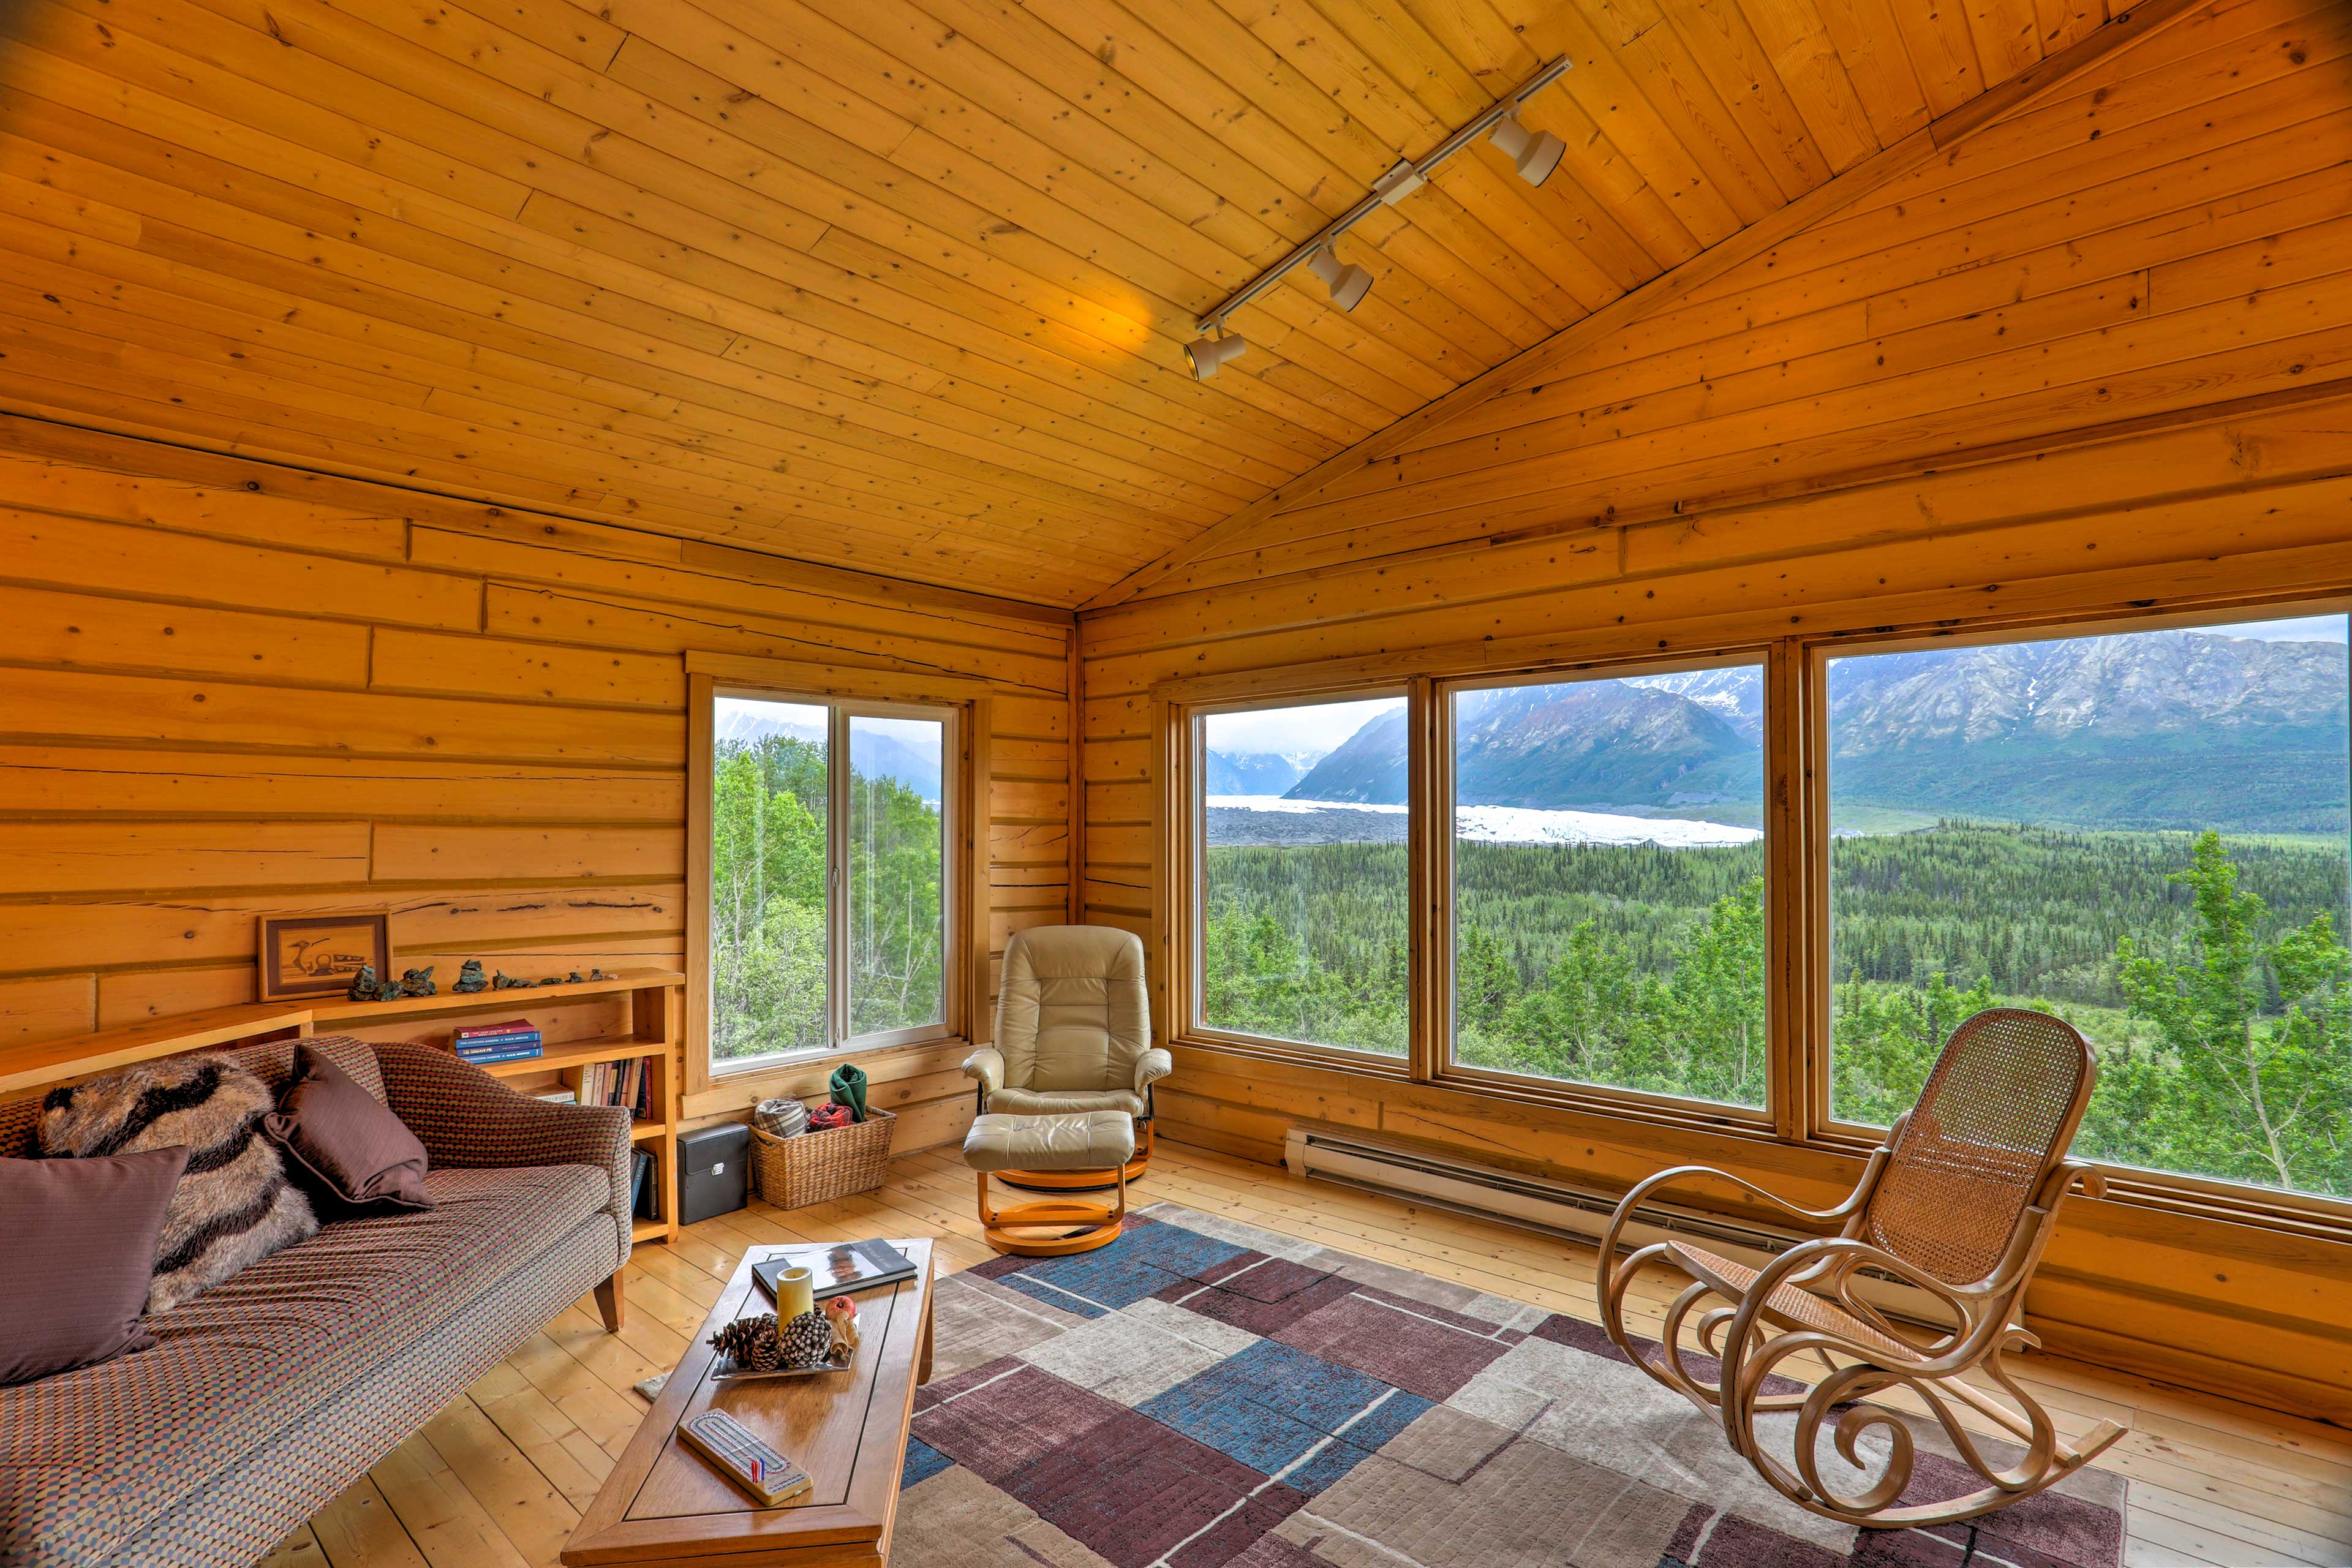 Mountain views and natural light fill the cathedral ceiling living space.